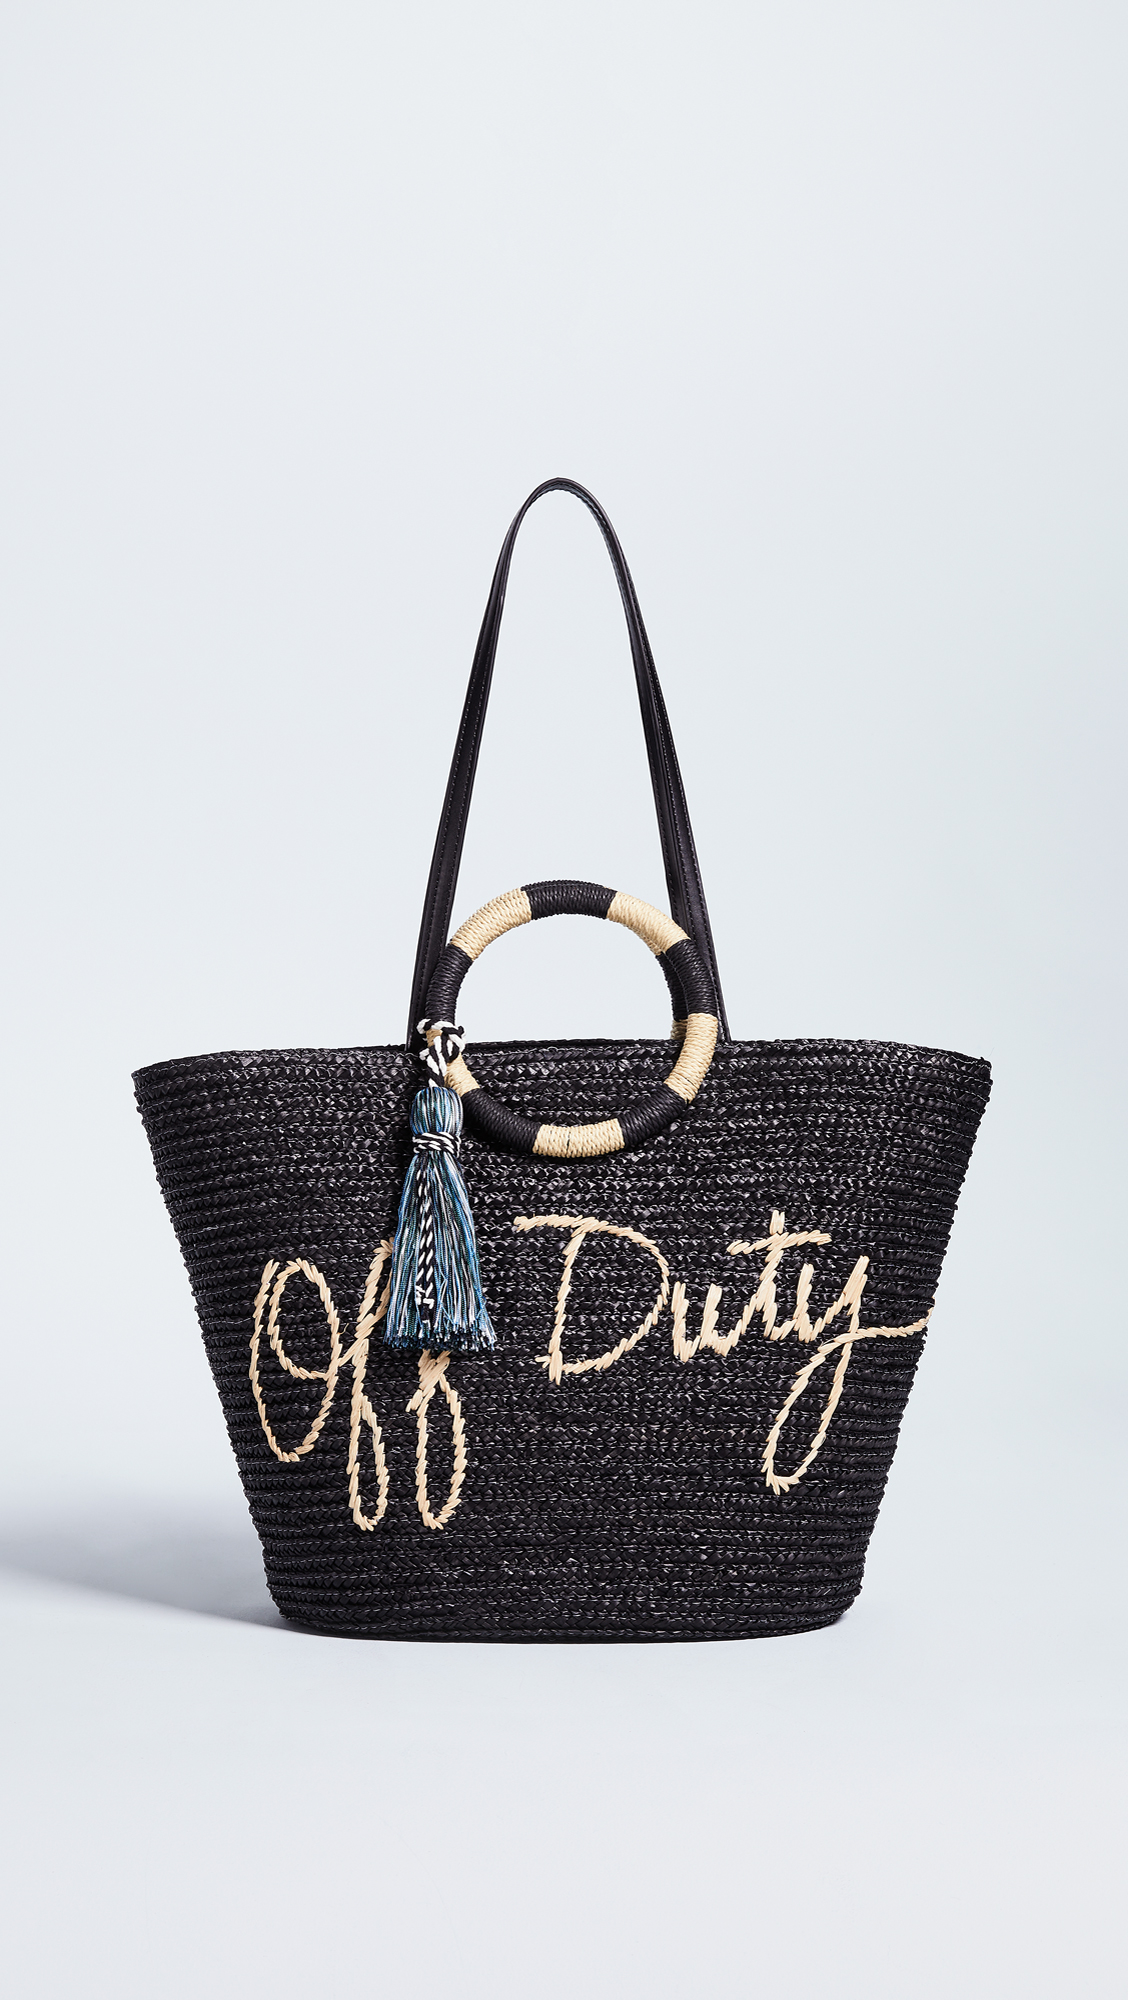 Off Duty Straw Tote